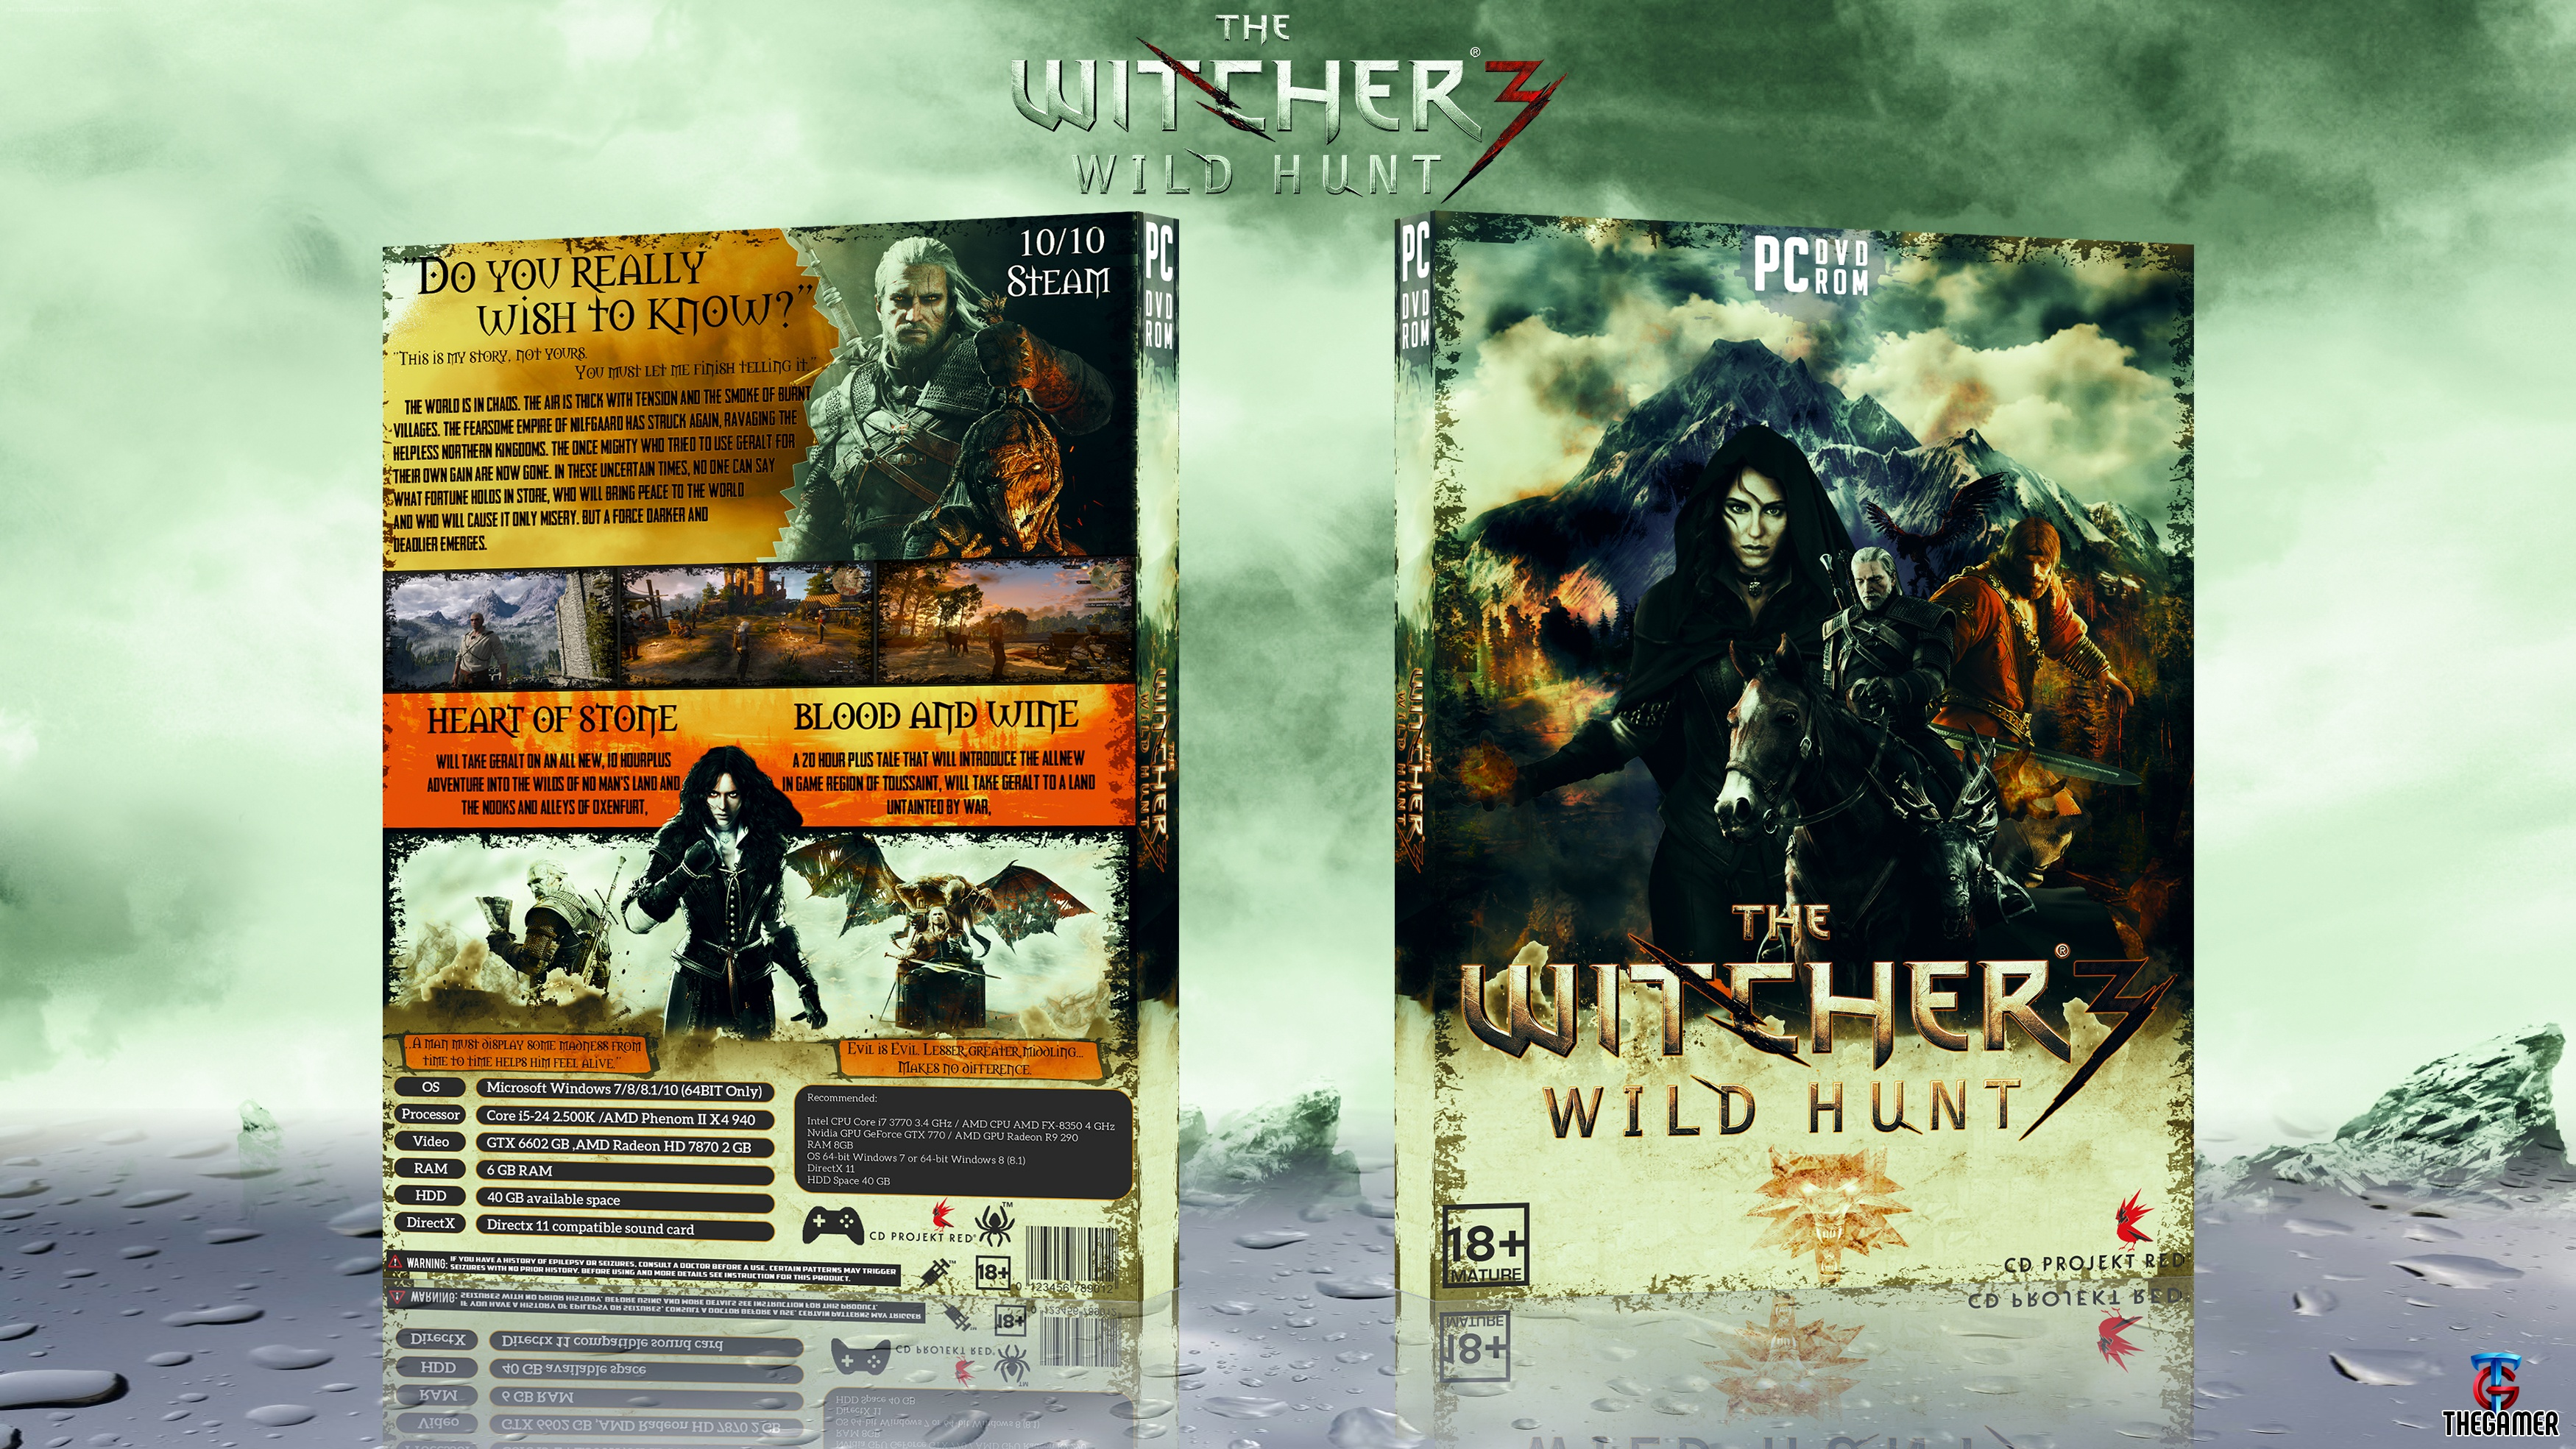 The Witcher 3: Wild Hunt box cover